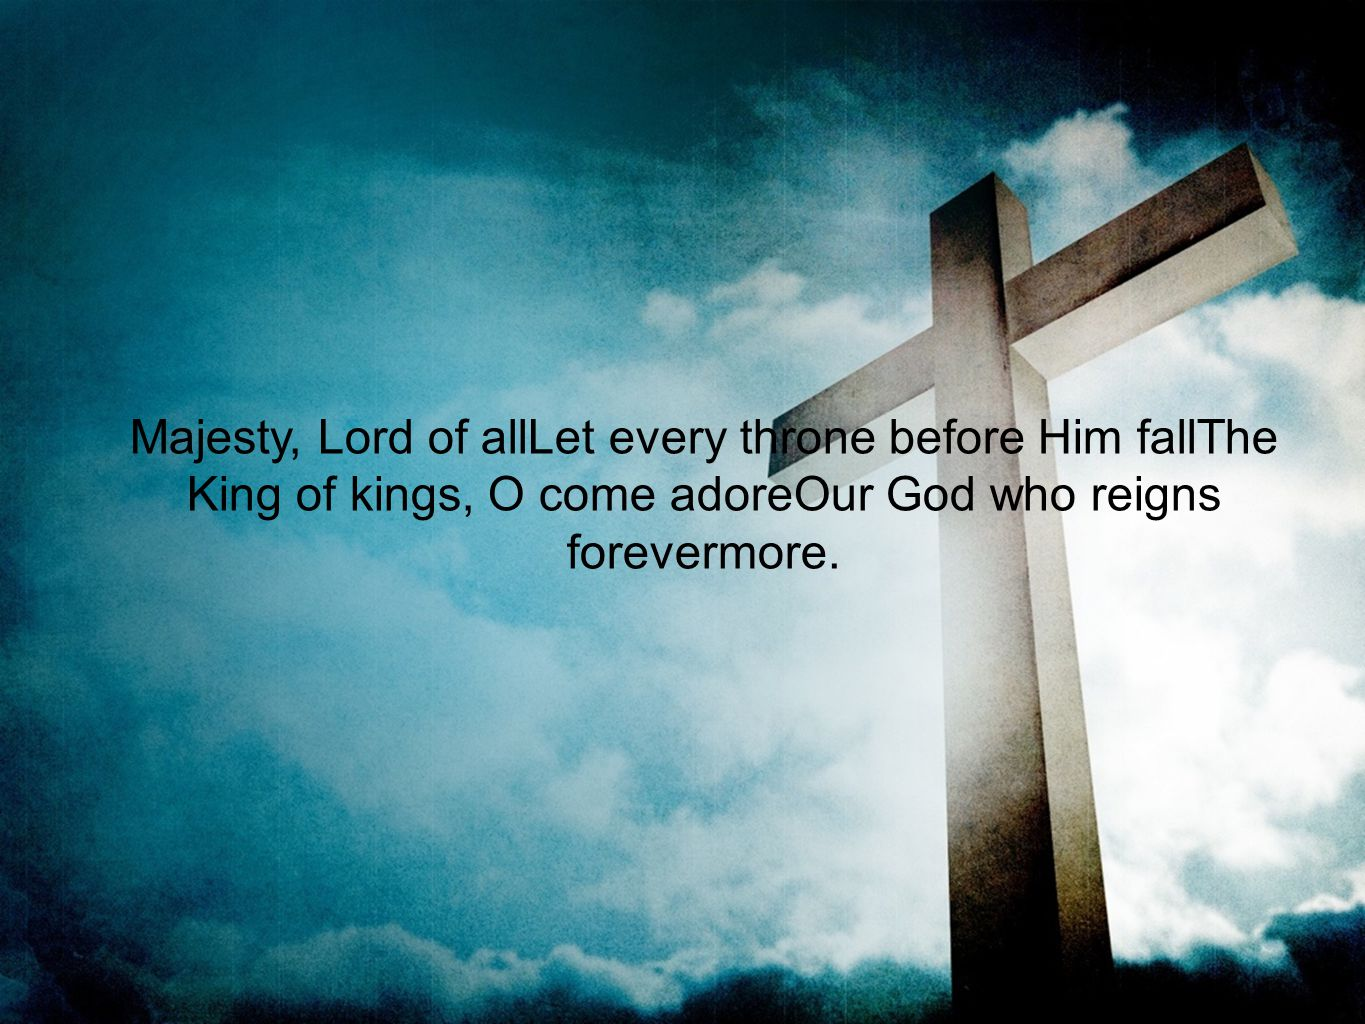 Majesty, Lord of allLet every throne before Him fallThe King of kings, O come adoreOur God who reigns forevermore.